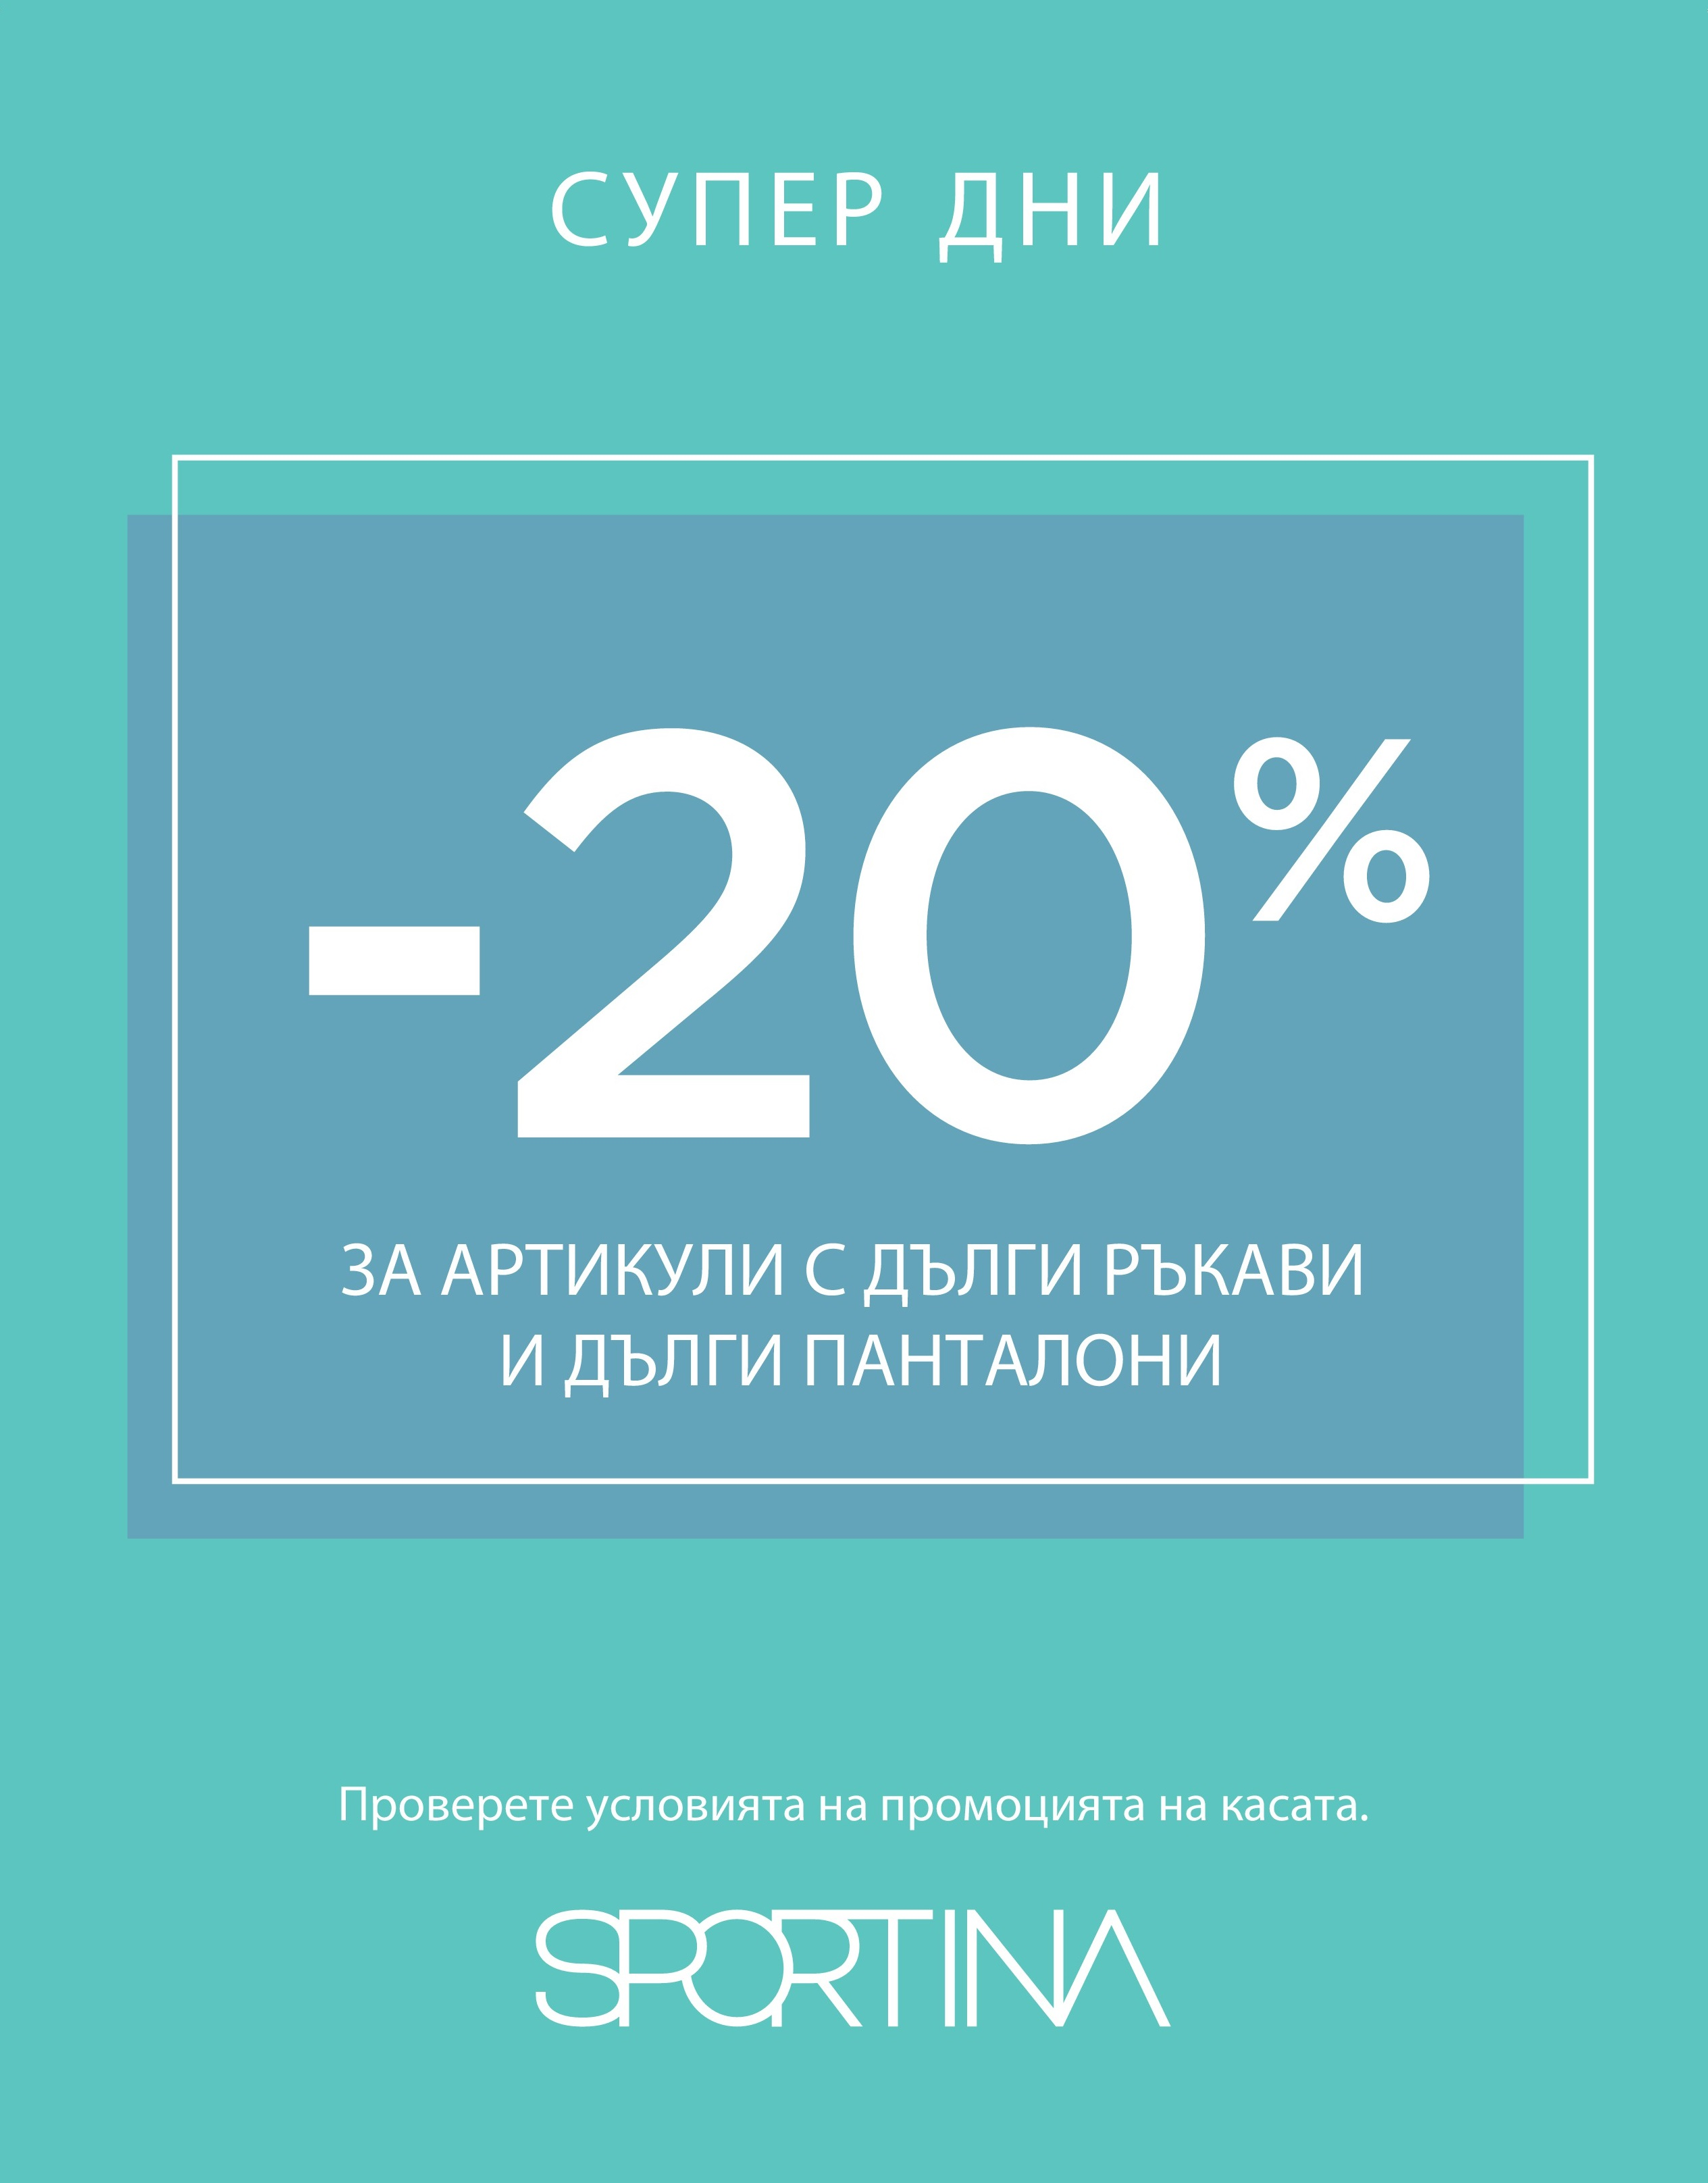 Special offer from SPORTINA!